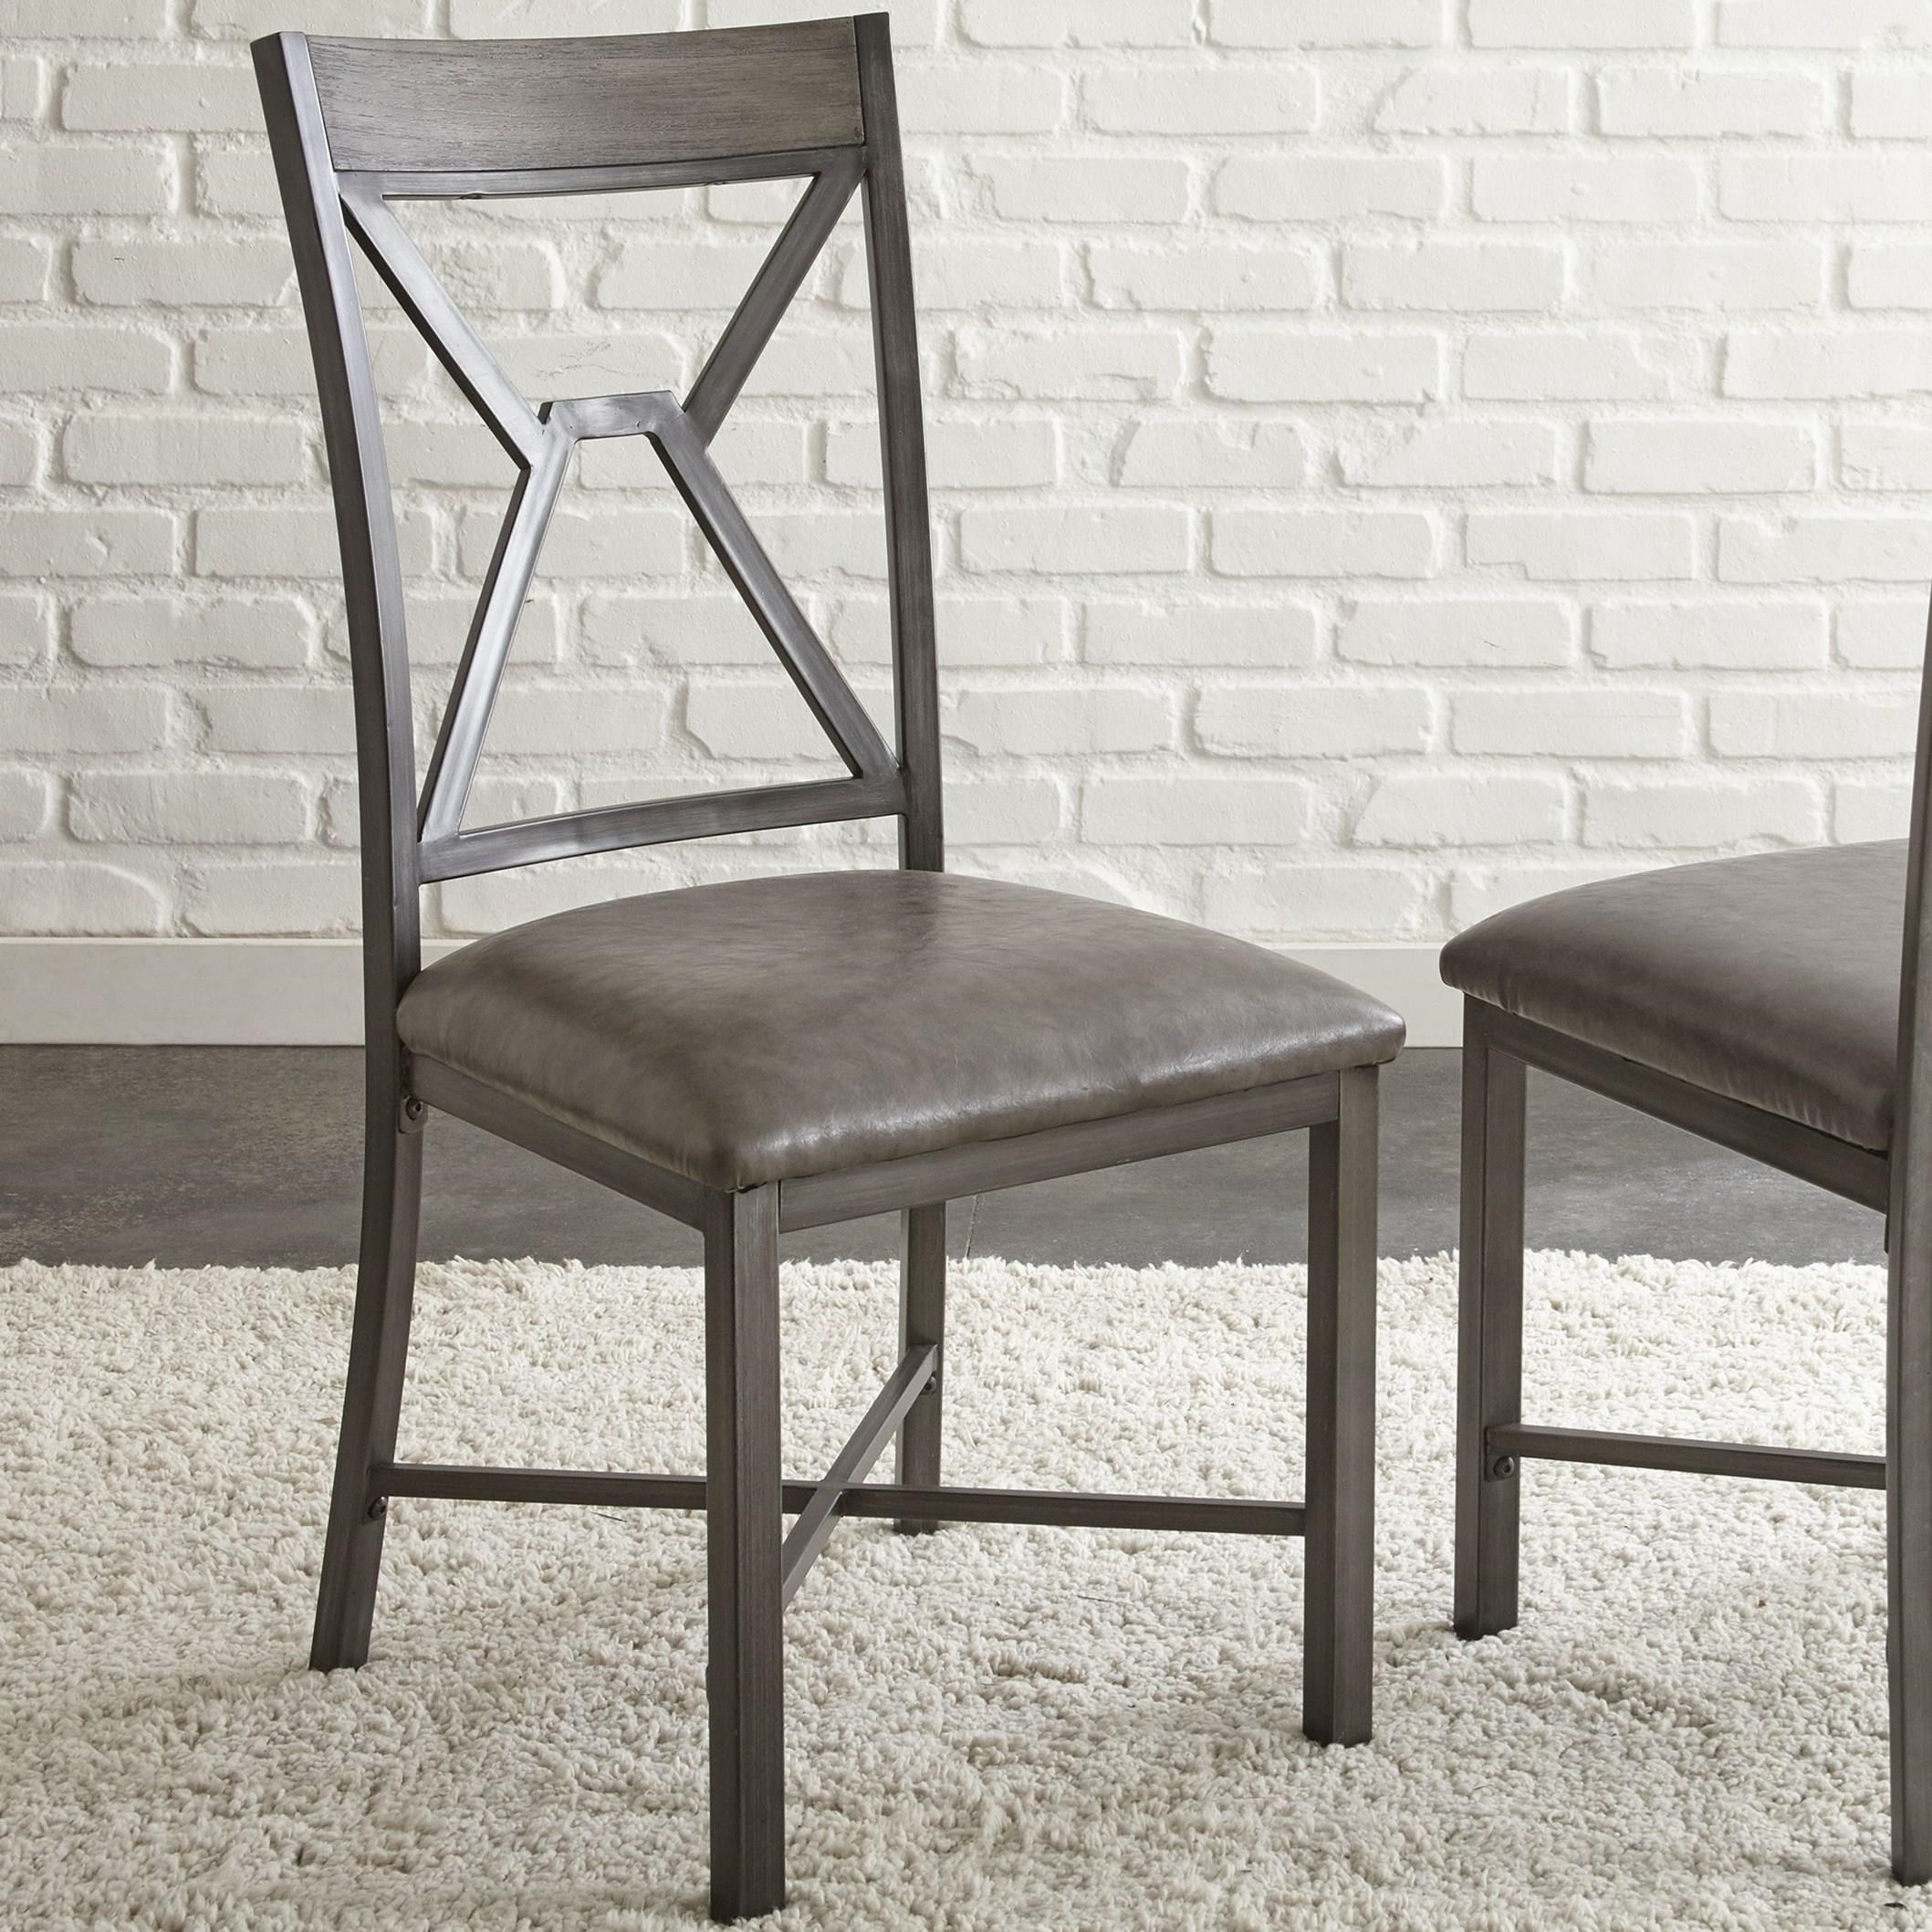 Alamo Side Chair by Steve Silver at Van Hill Furniture